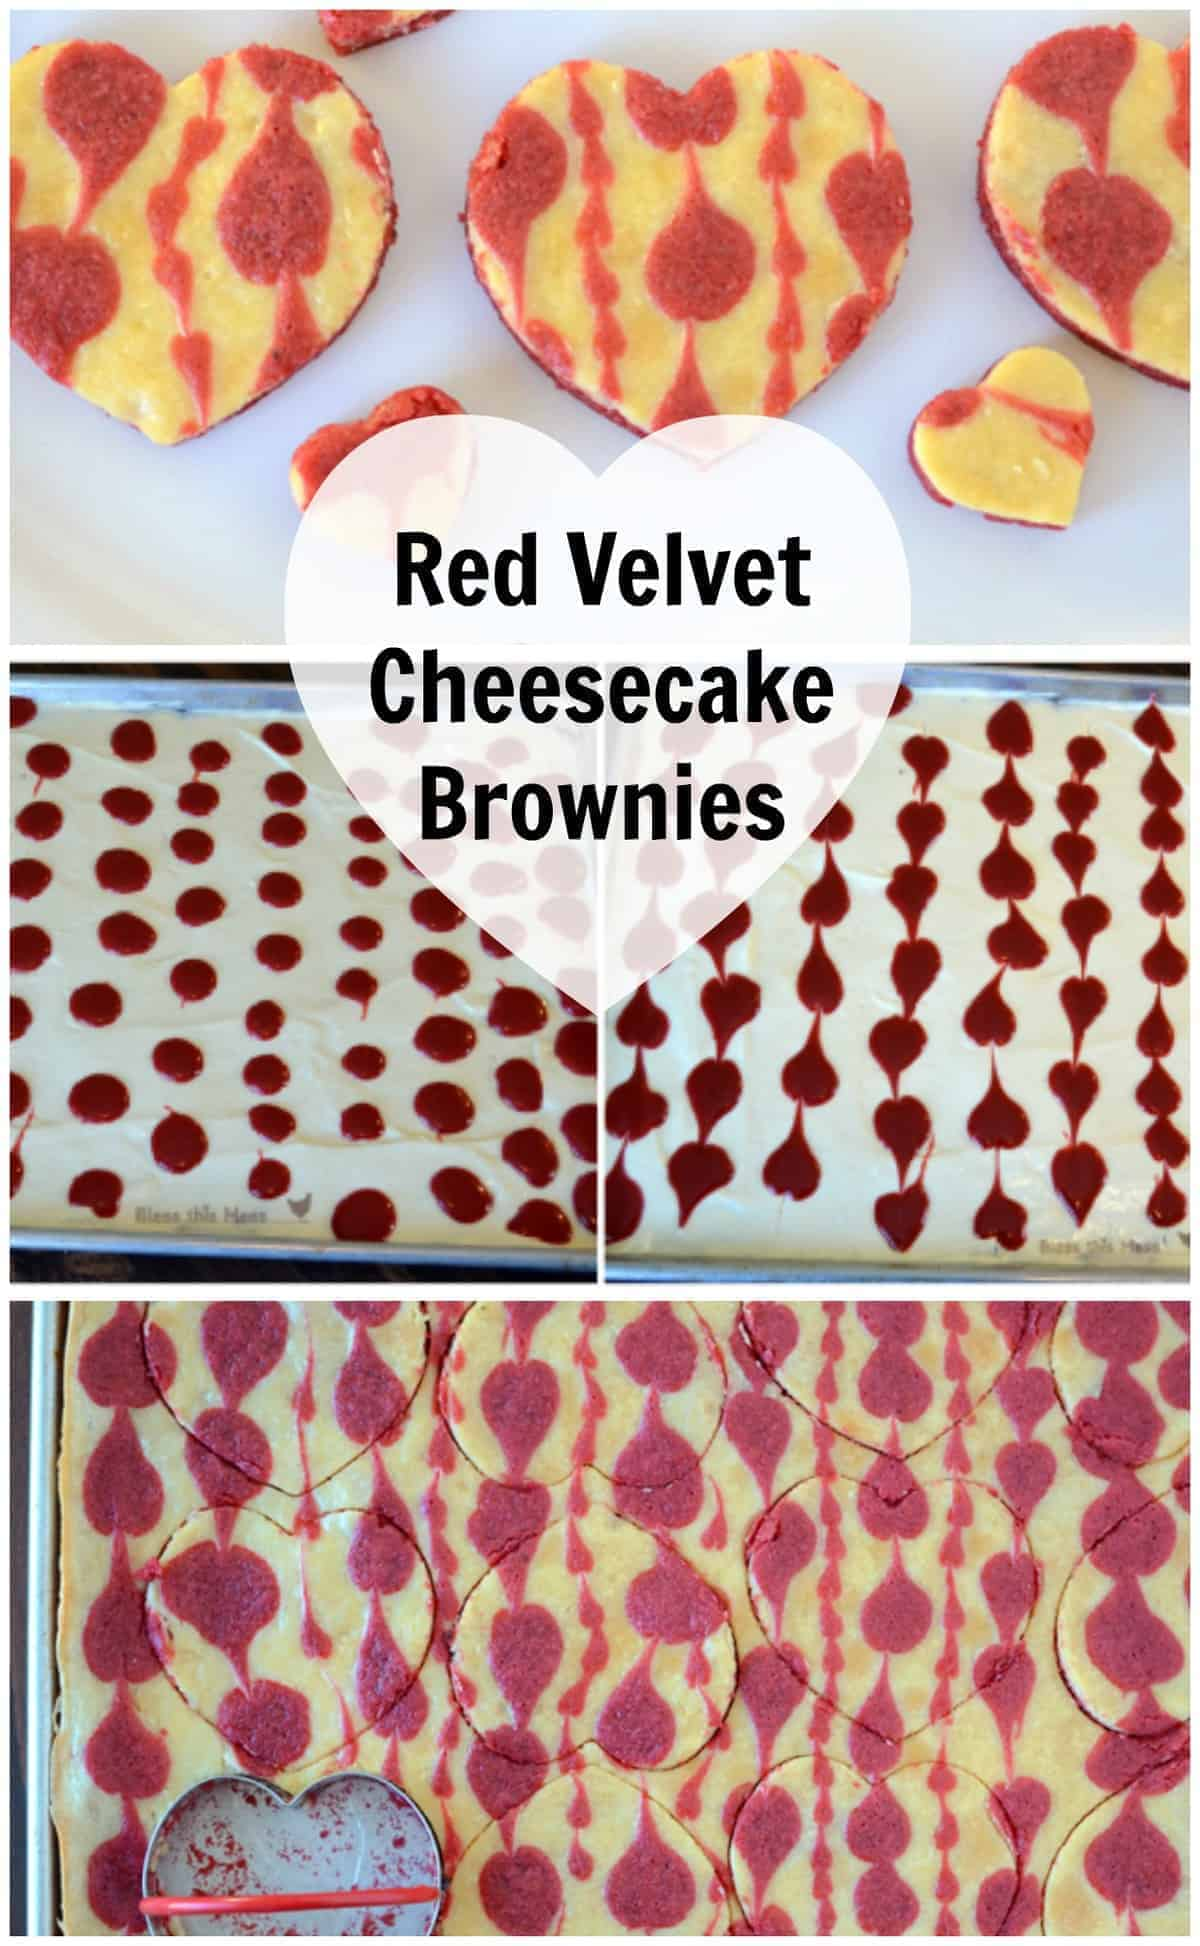 Various photos of red velvet cheesecake brownies with red hearts in the cheesecake layer.